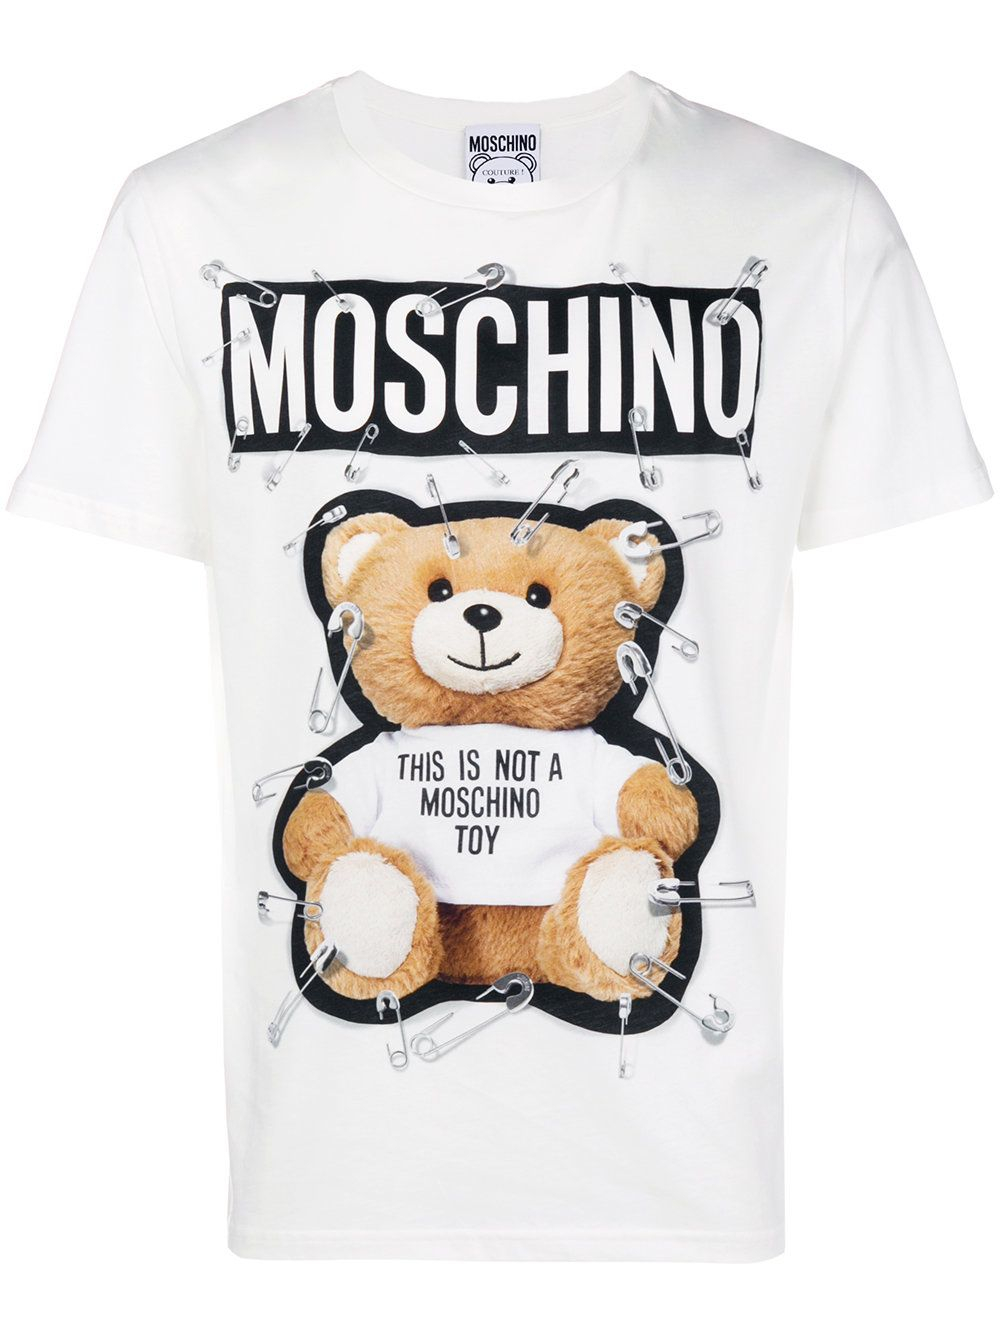 0403df65680dd Moschino Safety-pin teddy bear T-shirt | T-shirts | Bear t shirt ...